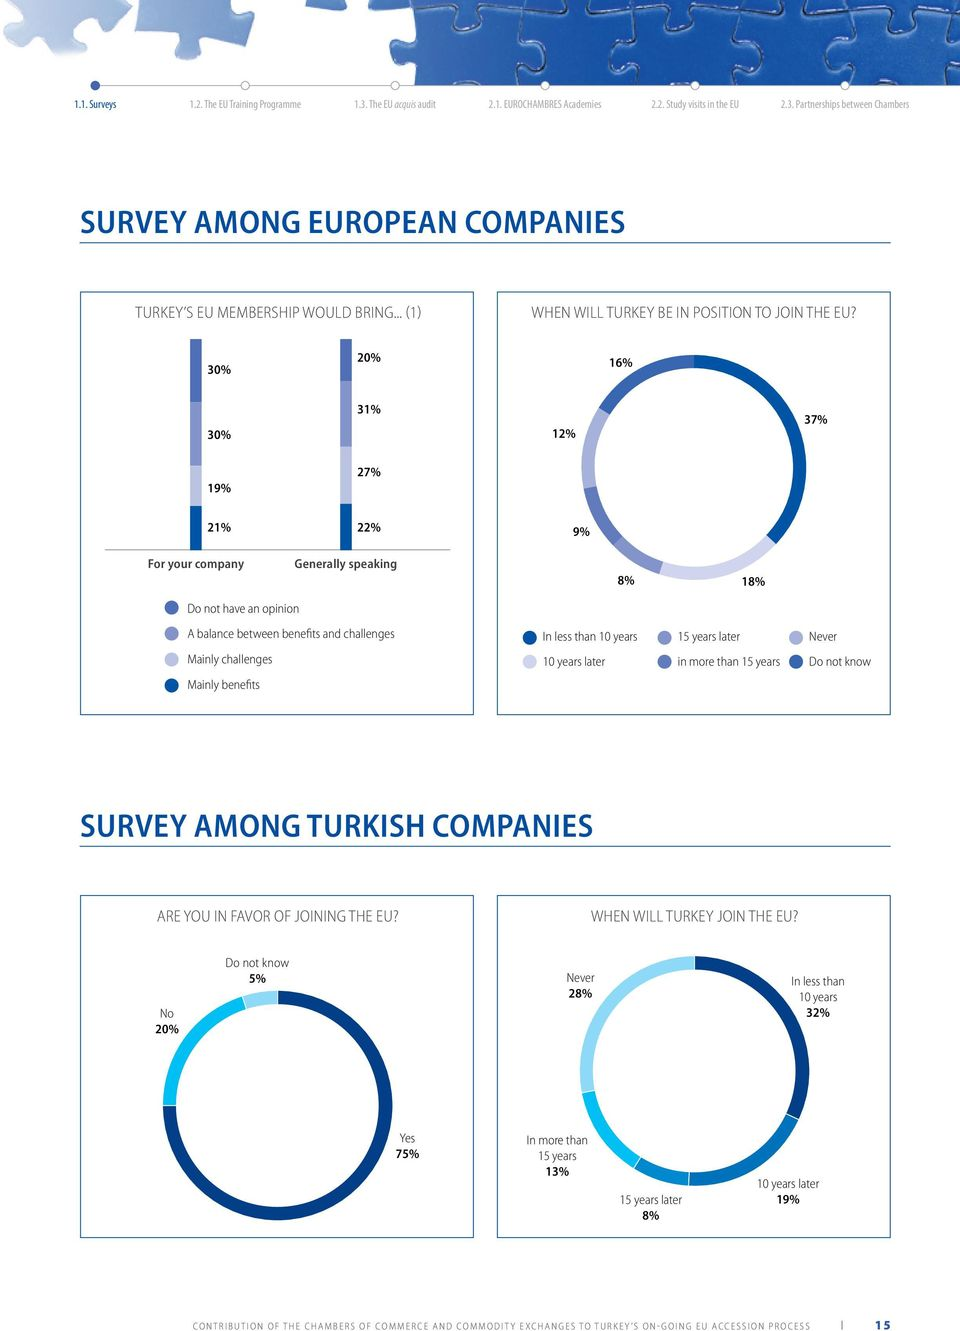 Never Mainly challenges 10 years later in more than 15 years Do not know Mainly benefits SURVEY AMONG TURKISH COMPANIES ARE YOU IN FAVOR OF JOINING THE EU? WHEN WILL TURKEY JOIN THE EU?